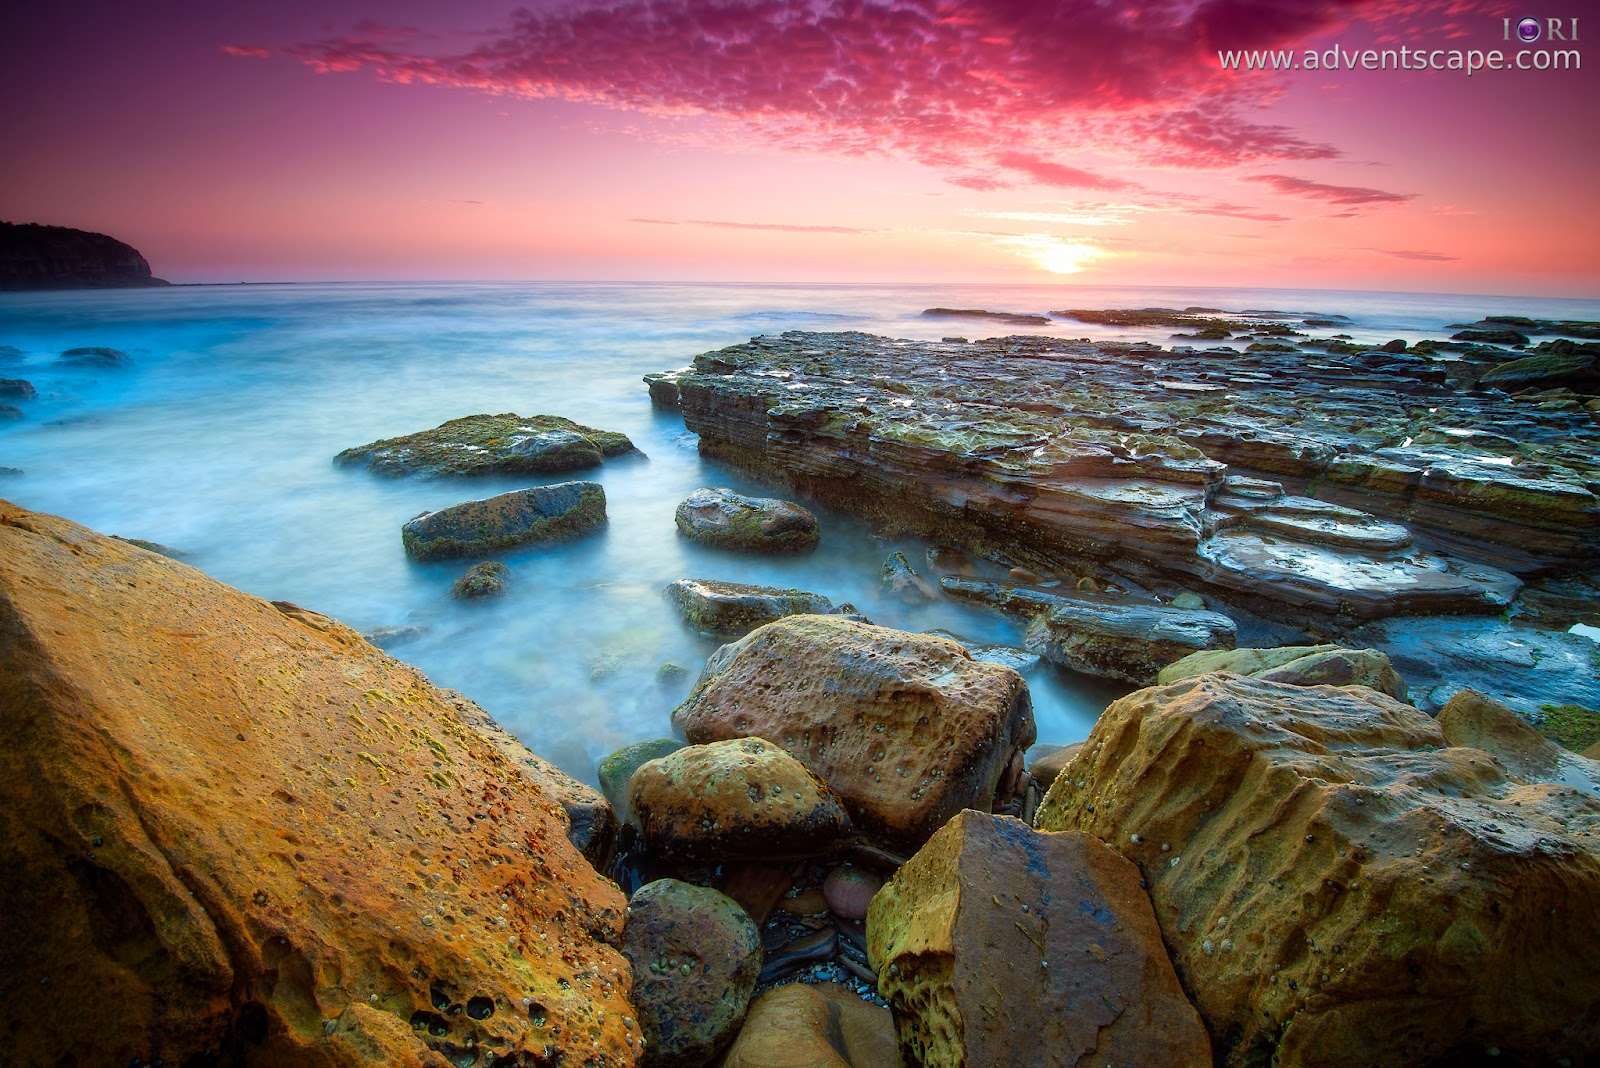 Australia, Australian Landscape Photographer, beach, coastline, landscape, New South Wales, NSW, Philip Avellana, seascape, shoreline, Turimetta, sky fever